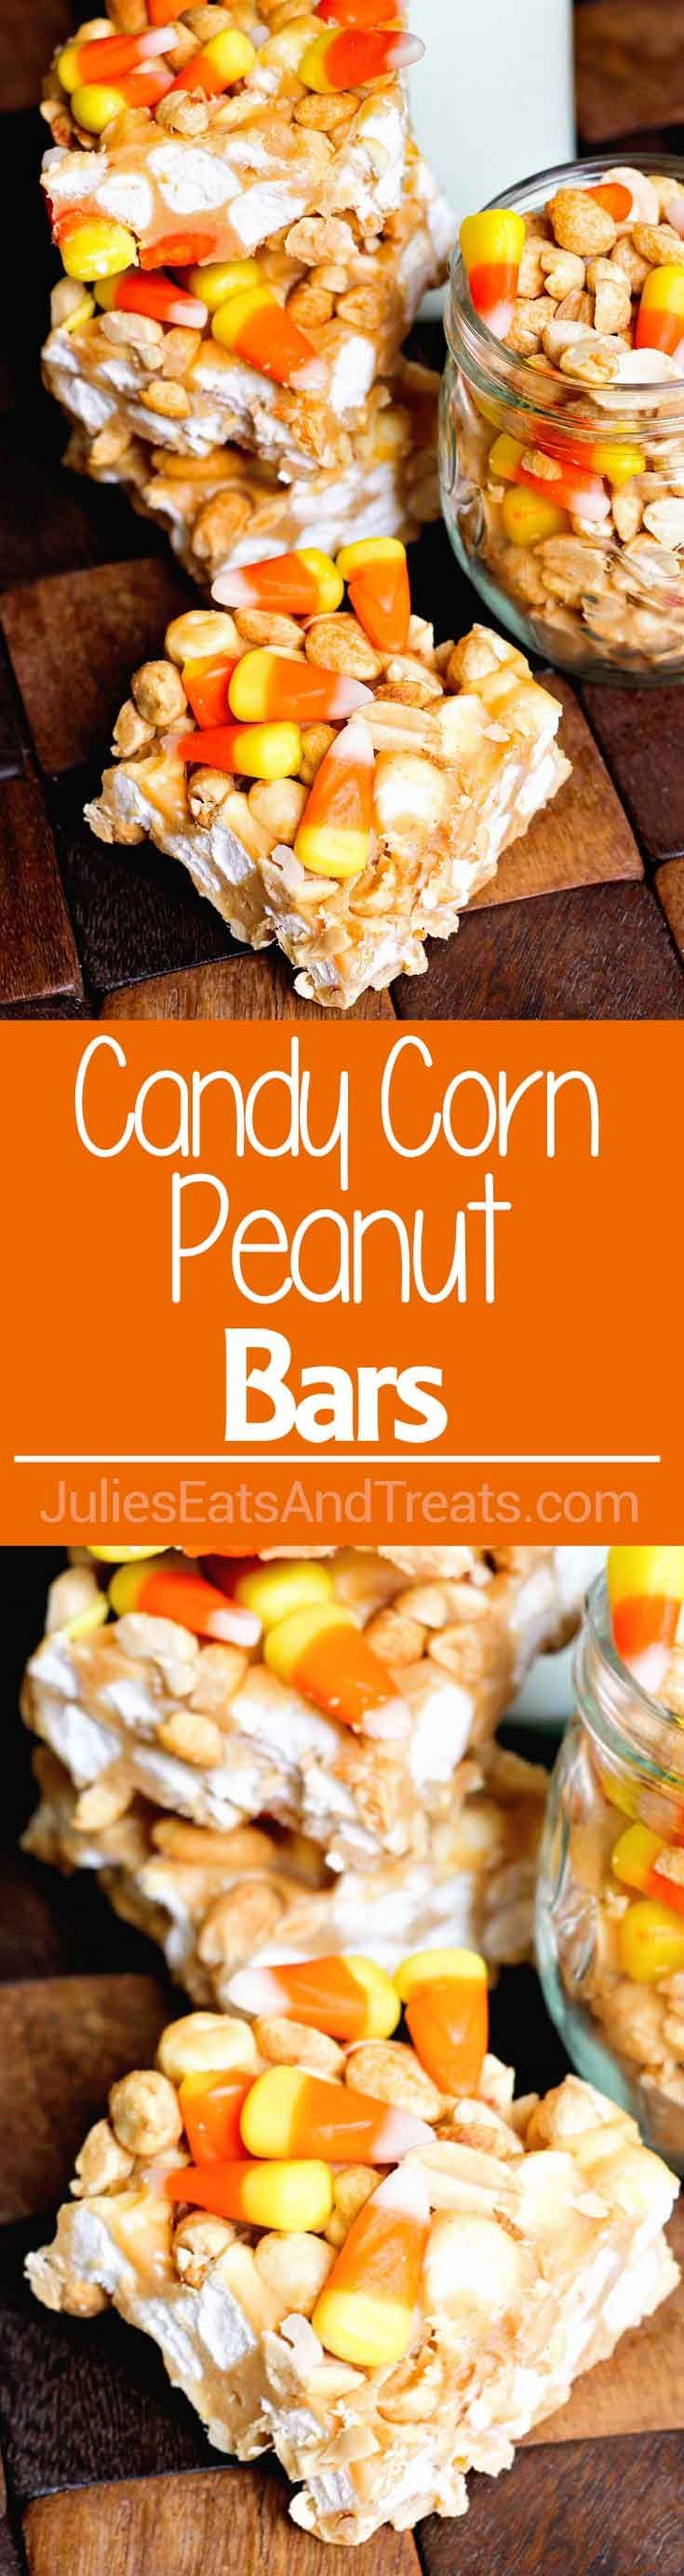 Candy Corn Peanut Bars ~ Loaded with peanuts, marshmallows and candy corn the perfect combo of sweet and salty! via @julieseats